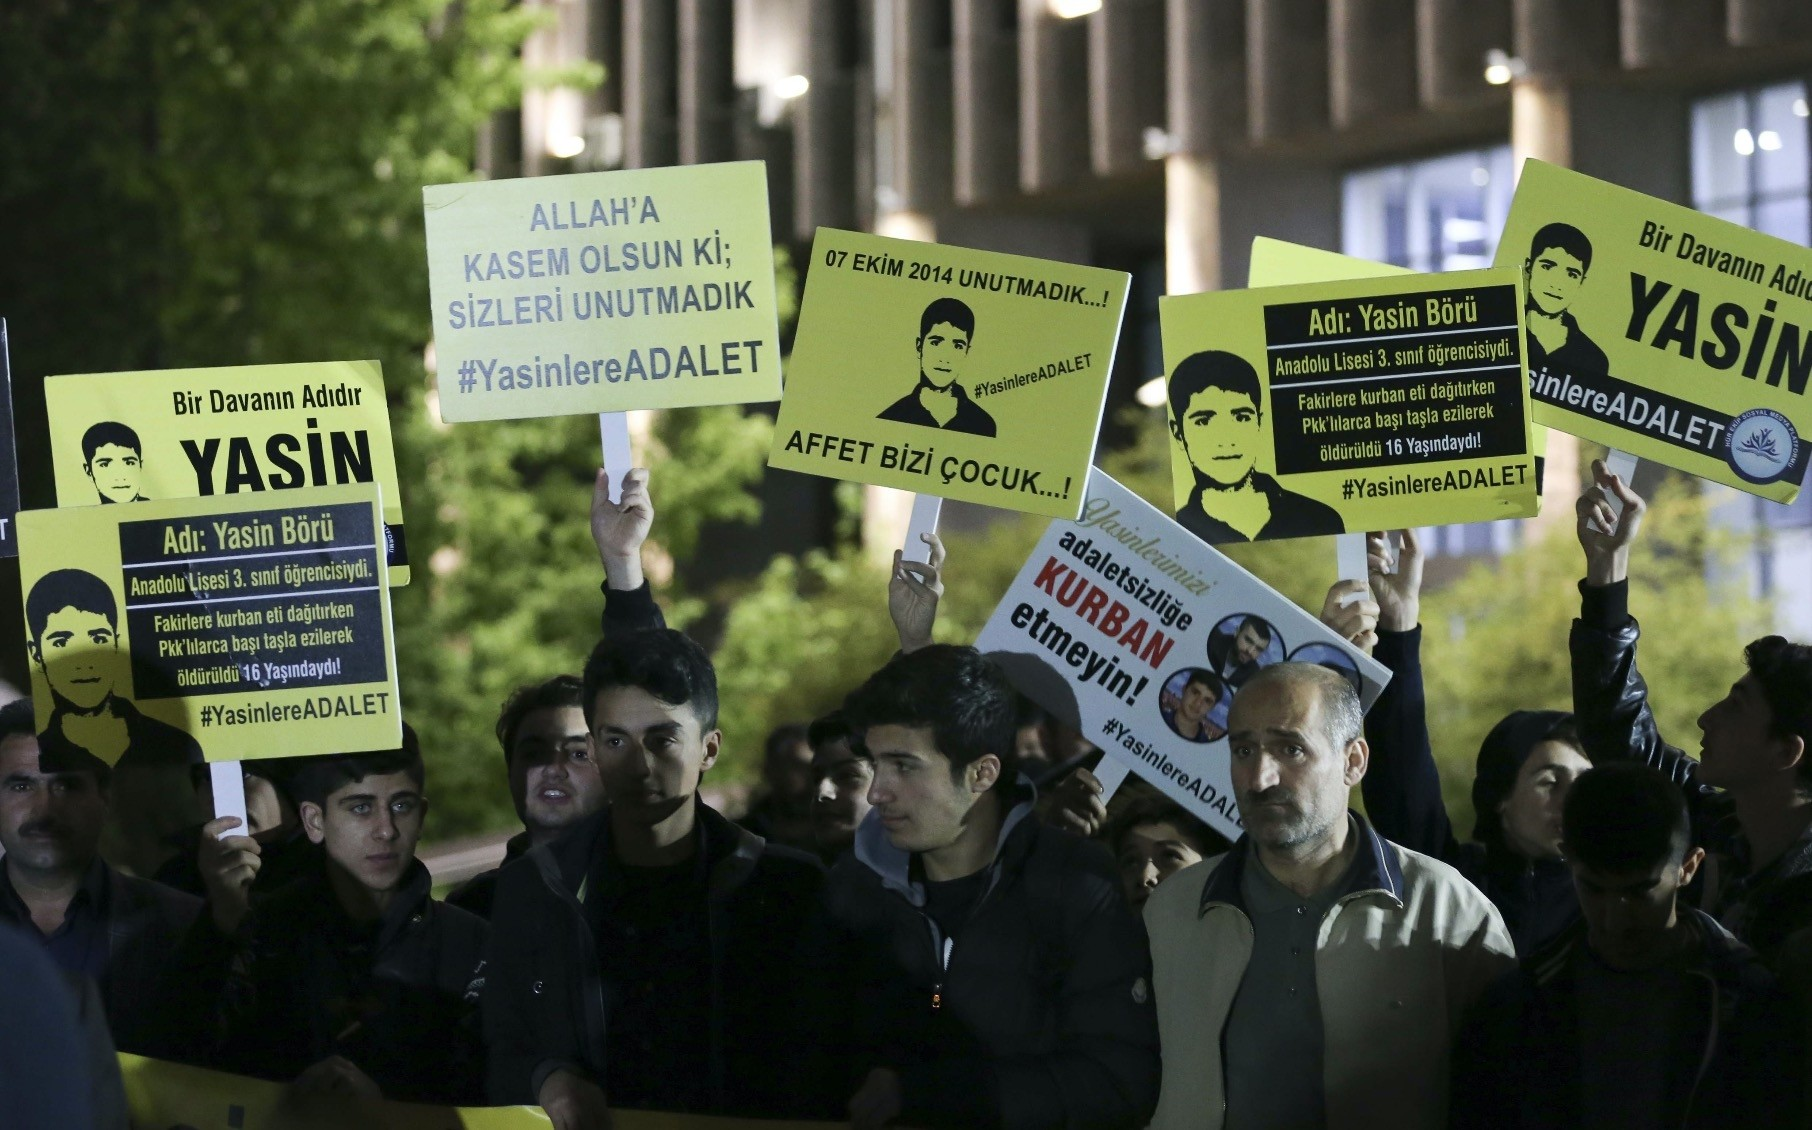 People stage a rally outside an Ankara courthouse, holding banners with pictureS of Yasin Bu00f6ru00fc, the teenage victim of PKK riots in Diyarbaku0131r, after a trial of those accused of killing Bu00f6ru00fc and his three friends.